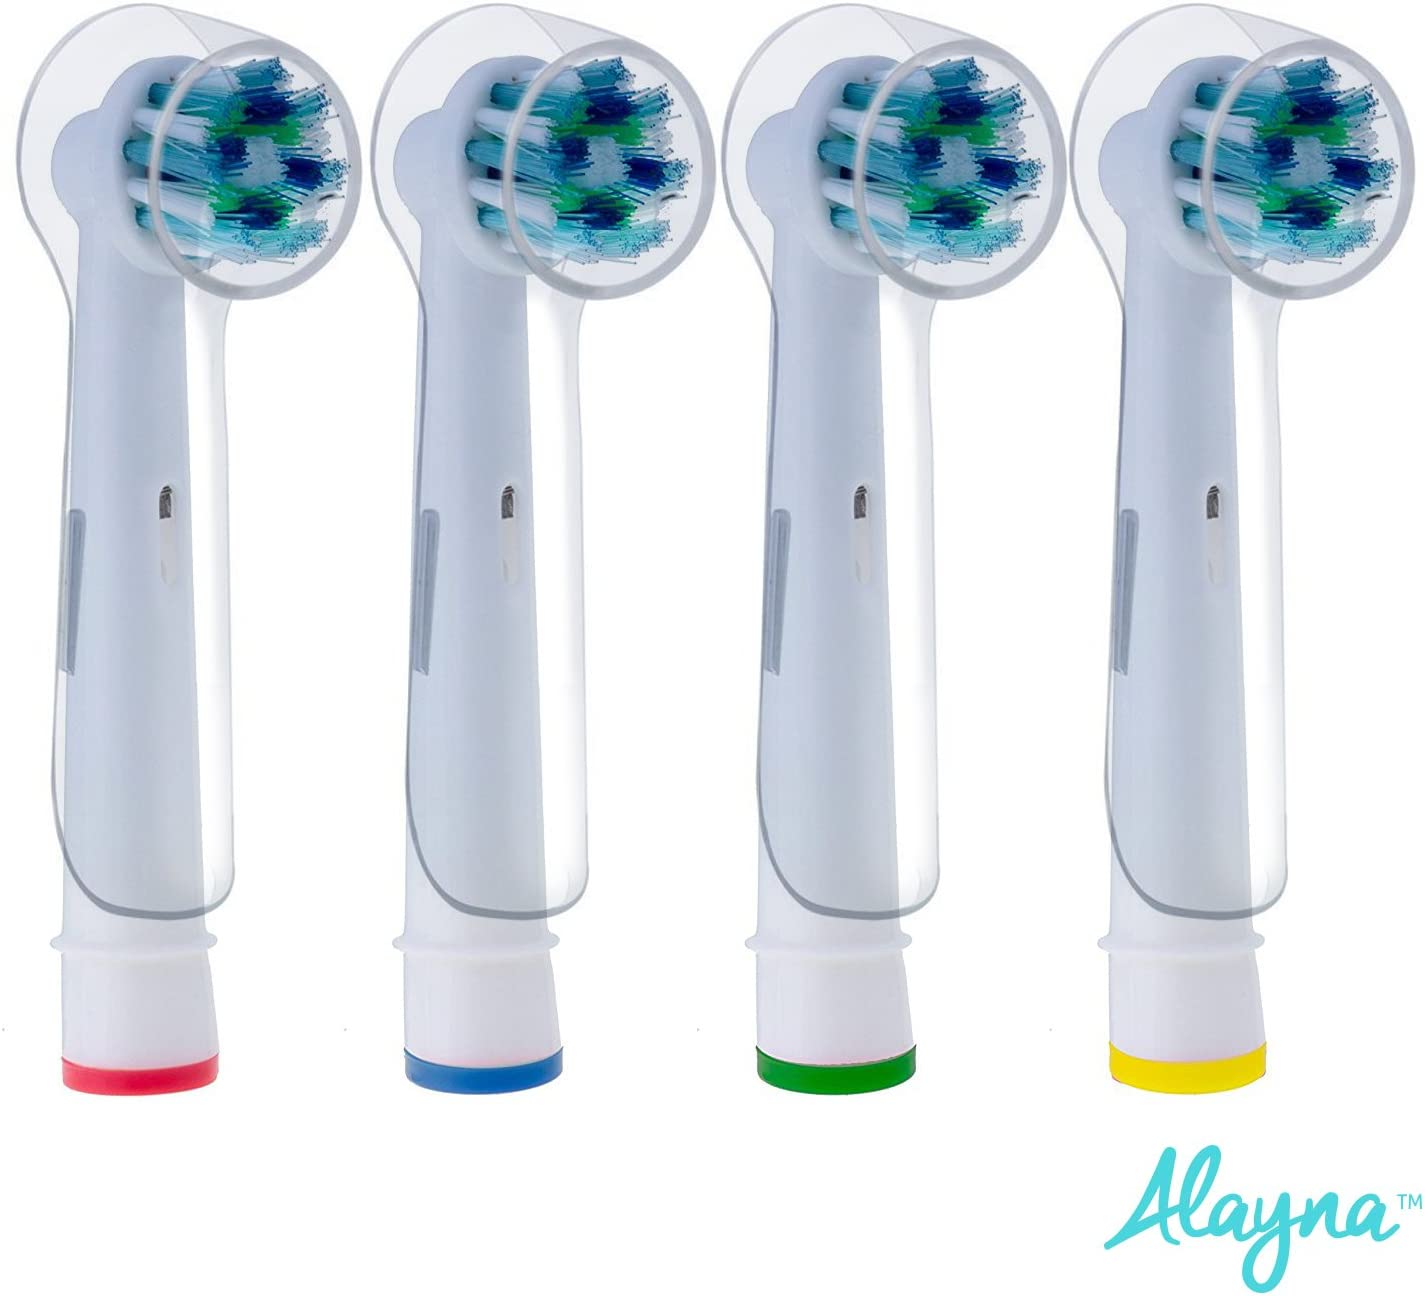 4× Electric Toothbrush Round Head Cover Protective Caps for Oral-B tooth Brushes